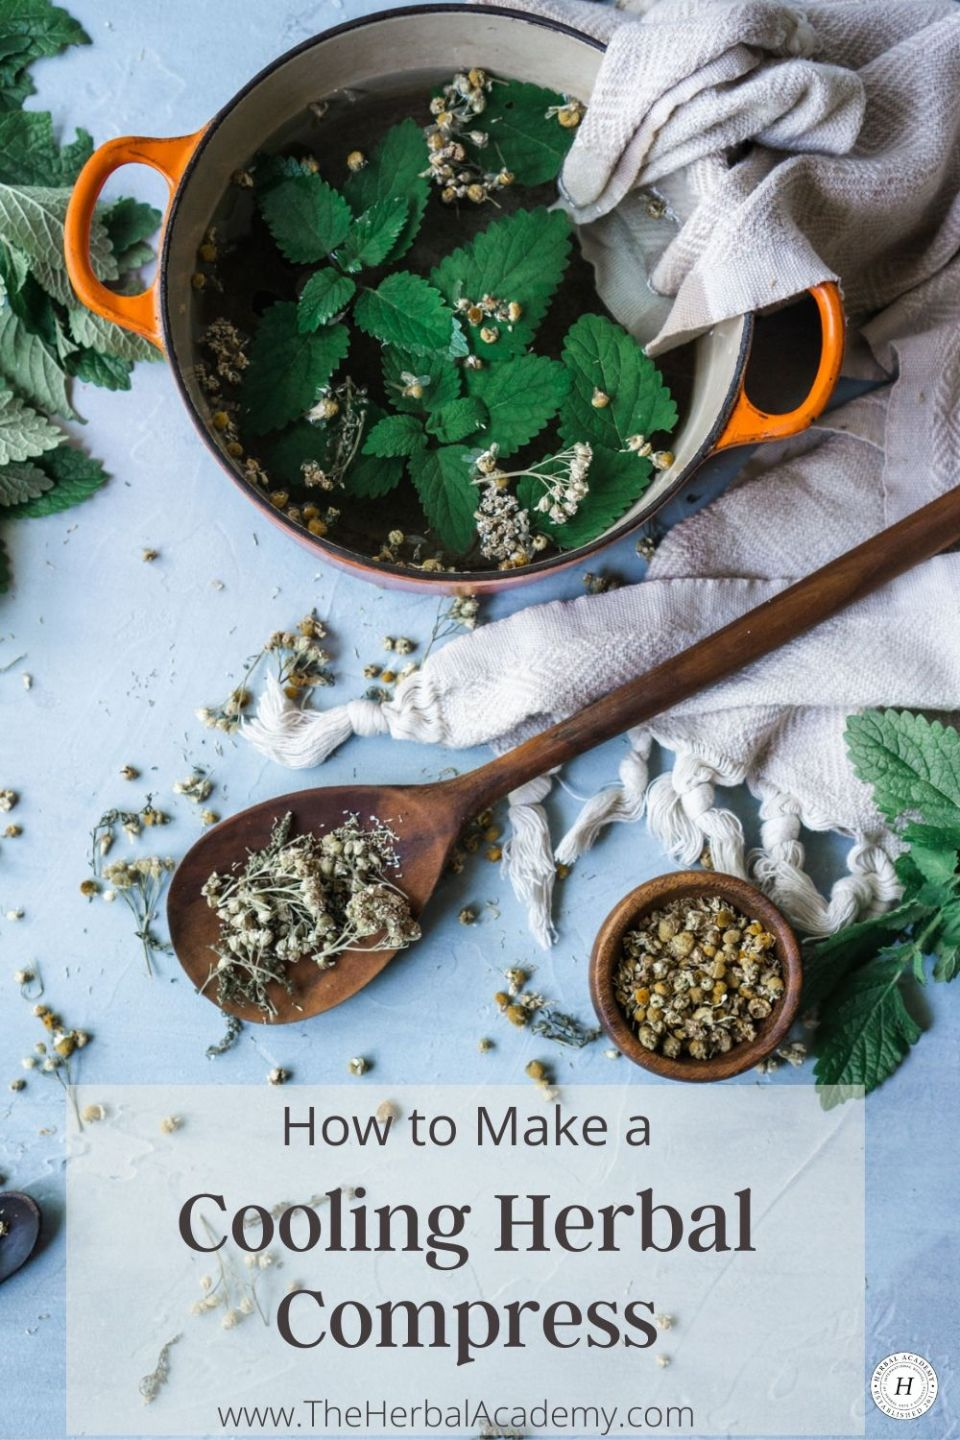 Try A Cooling Herbal Compress for Hot Summer Days | Herbal Academy | One way to keep the heat at bay while enjoying summer weather is to make a cooling herbal compress from herbs like peppermint, yarrow, and chamomile.